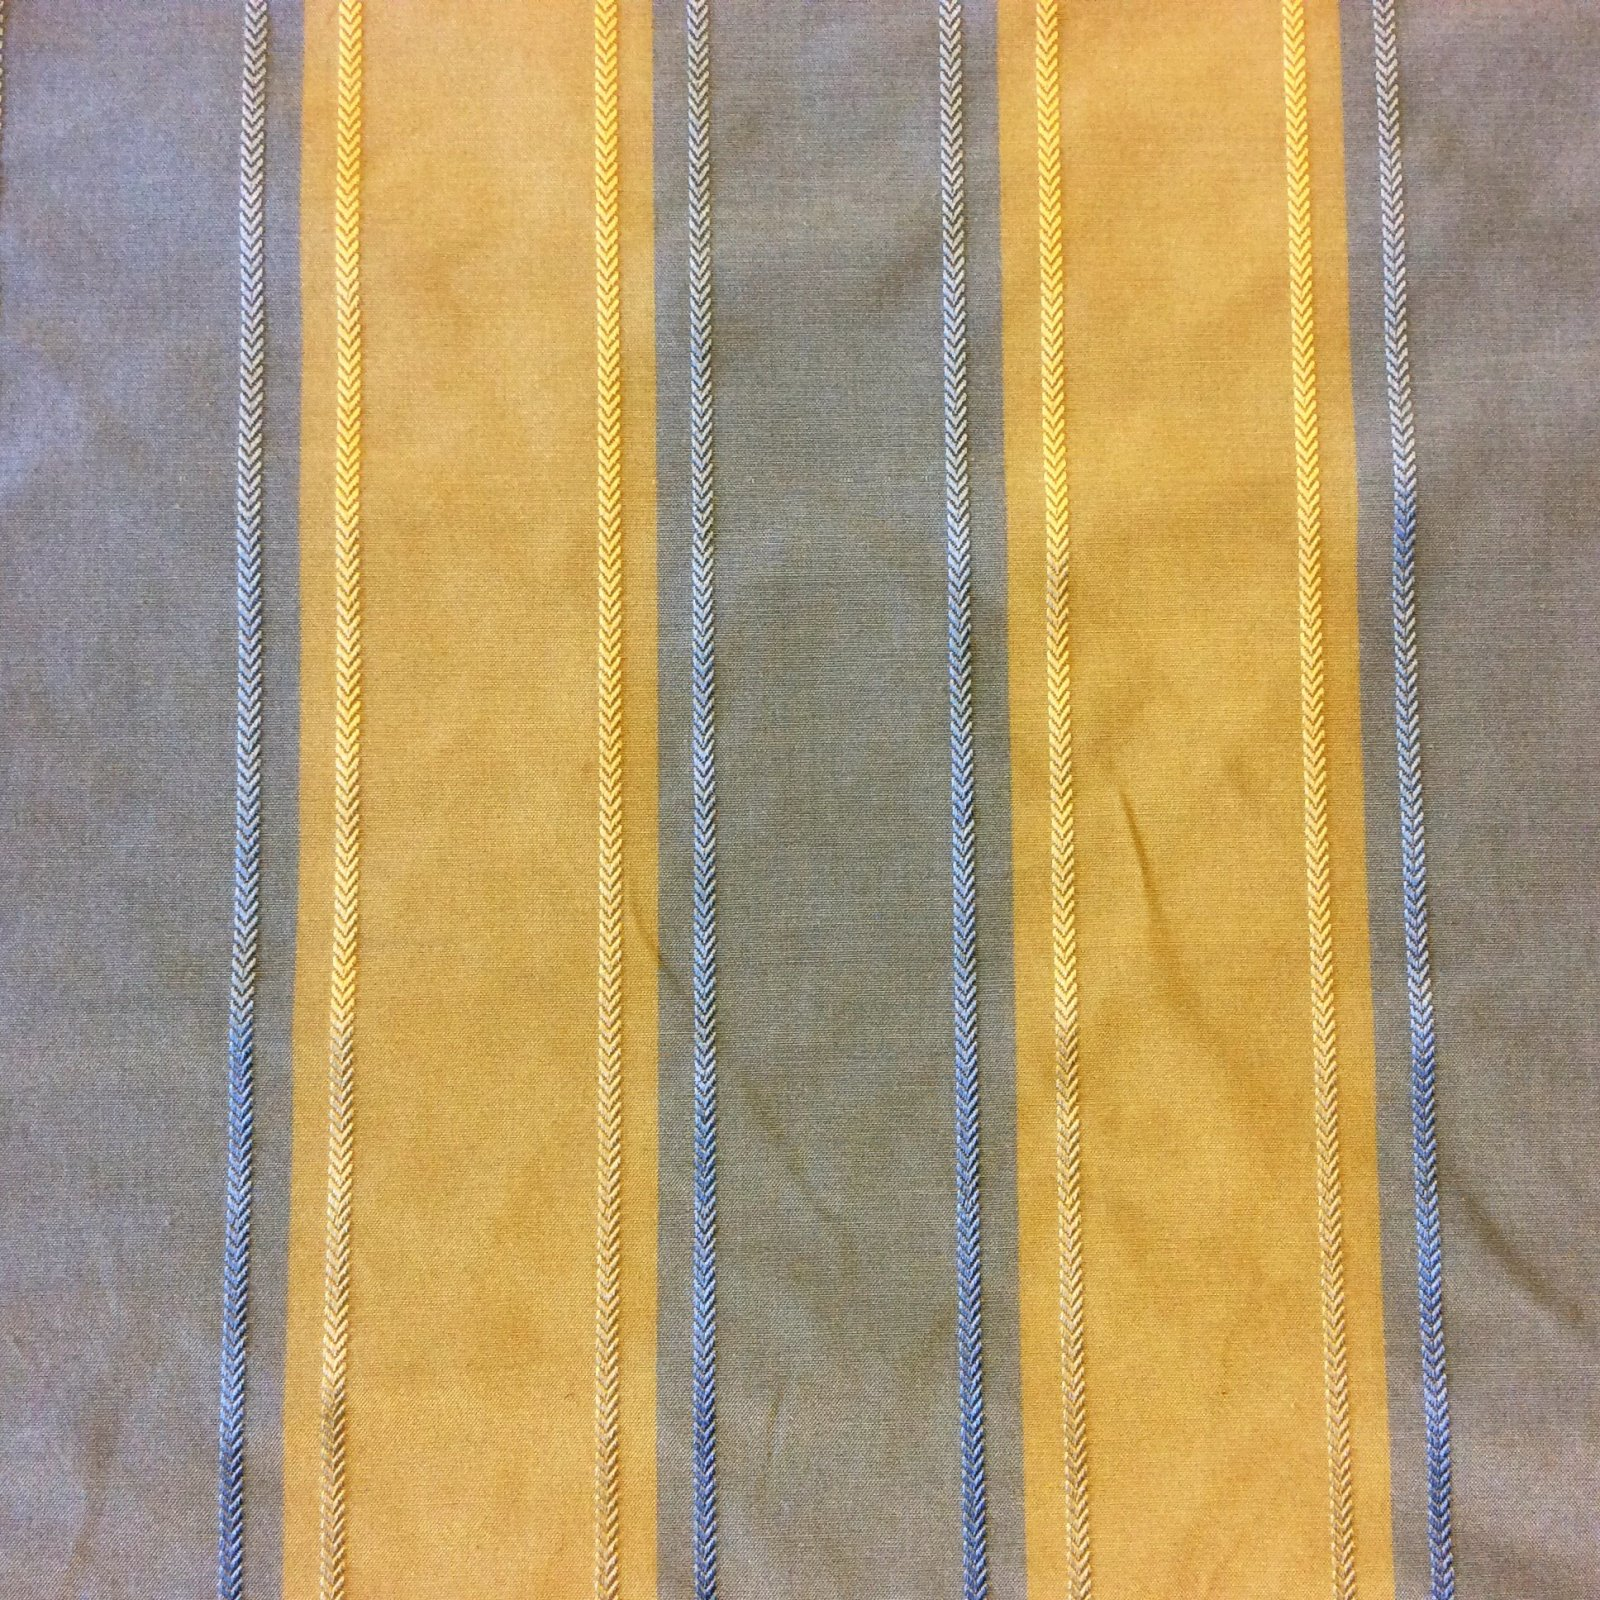 Regency Style Sky Blue and Butter Yellow Gold Vertical Stripe with Jacquard Herringbone Accent Extraordinary Silk Fabric Drapery Fabric. HD752